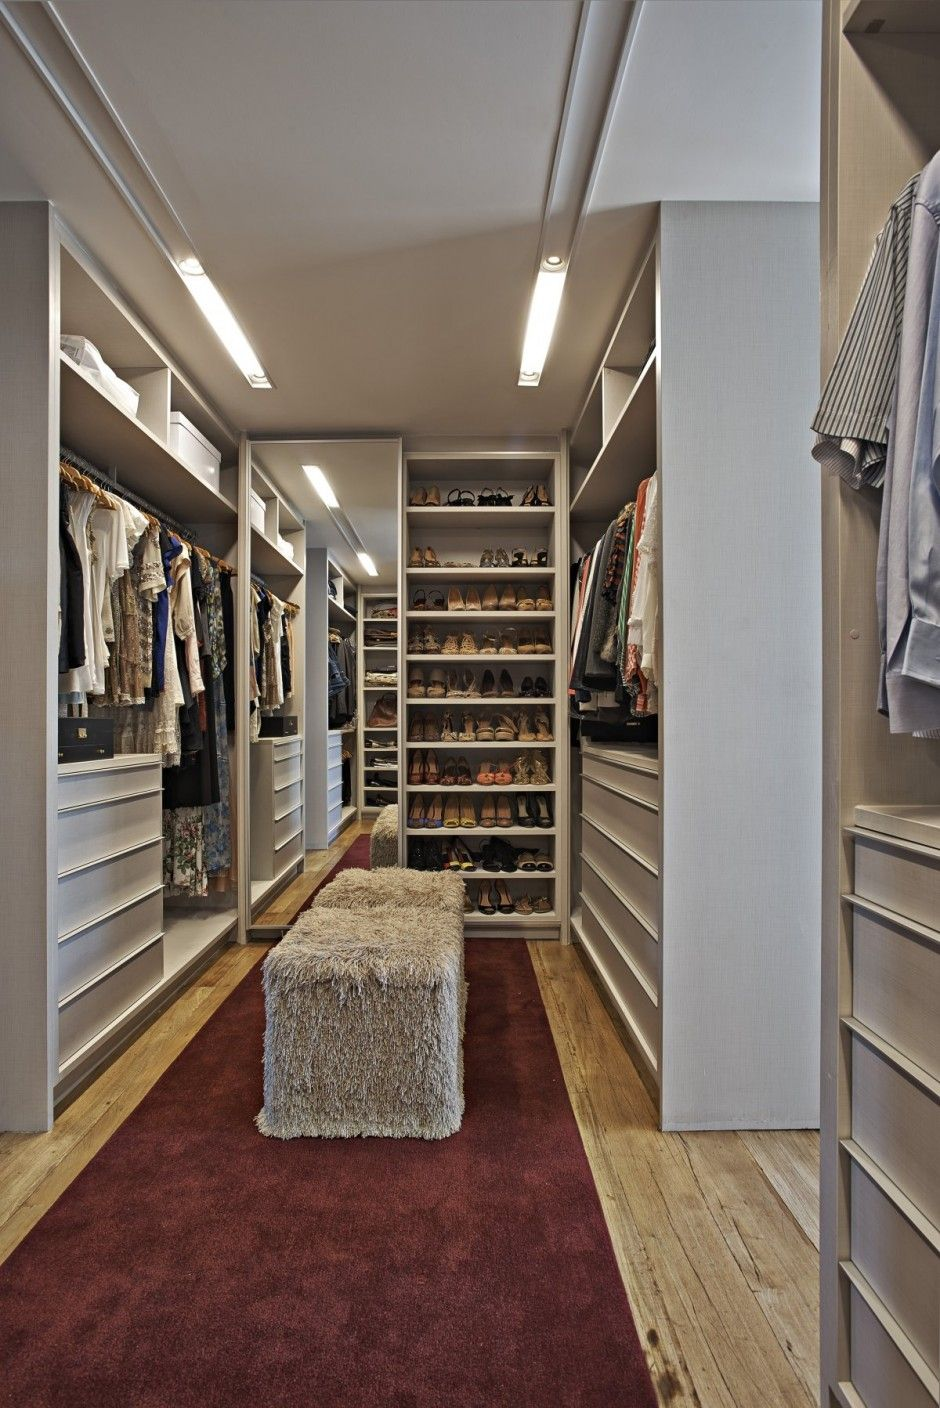 Big Closet. Not So Sure I Would Want All That Space Since I